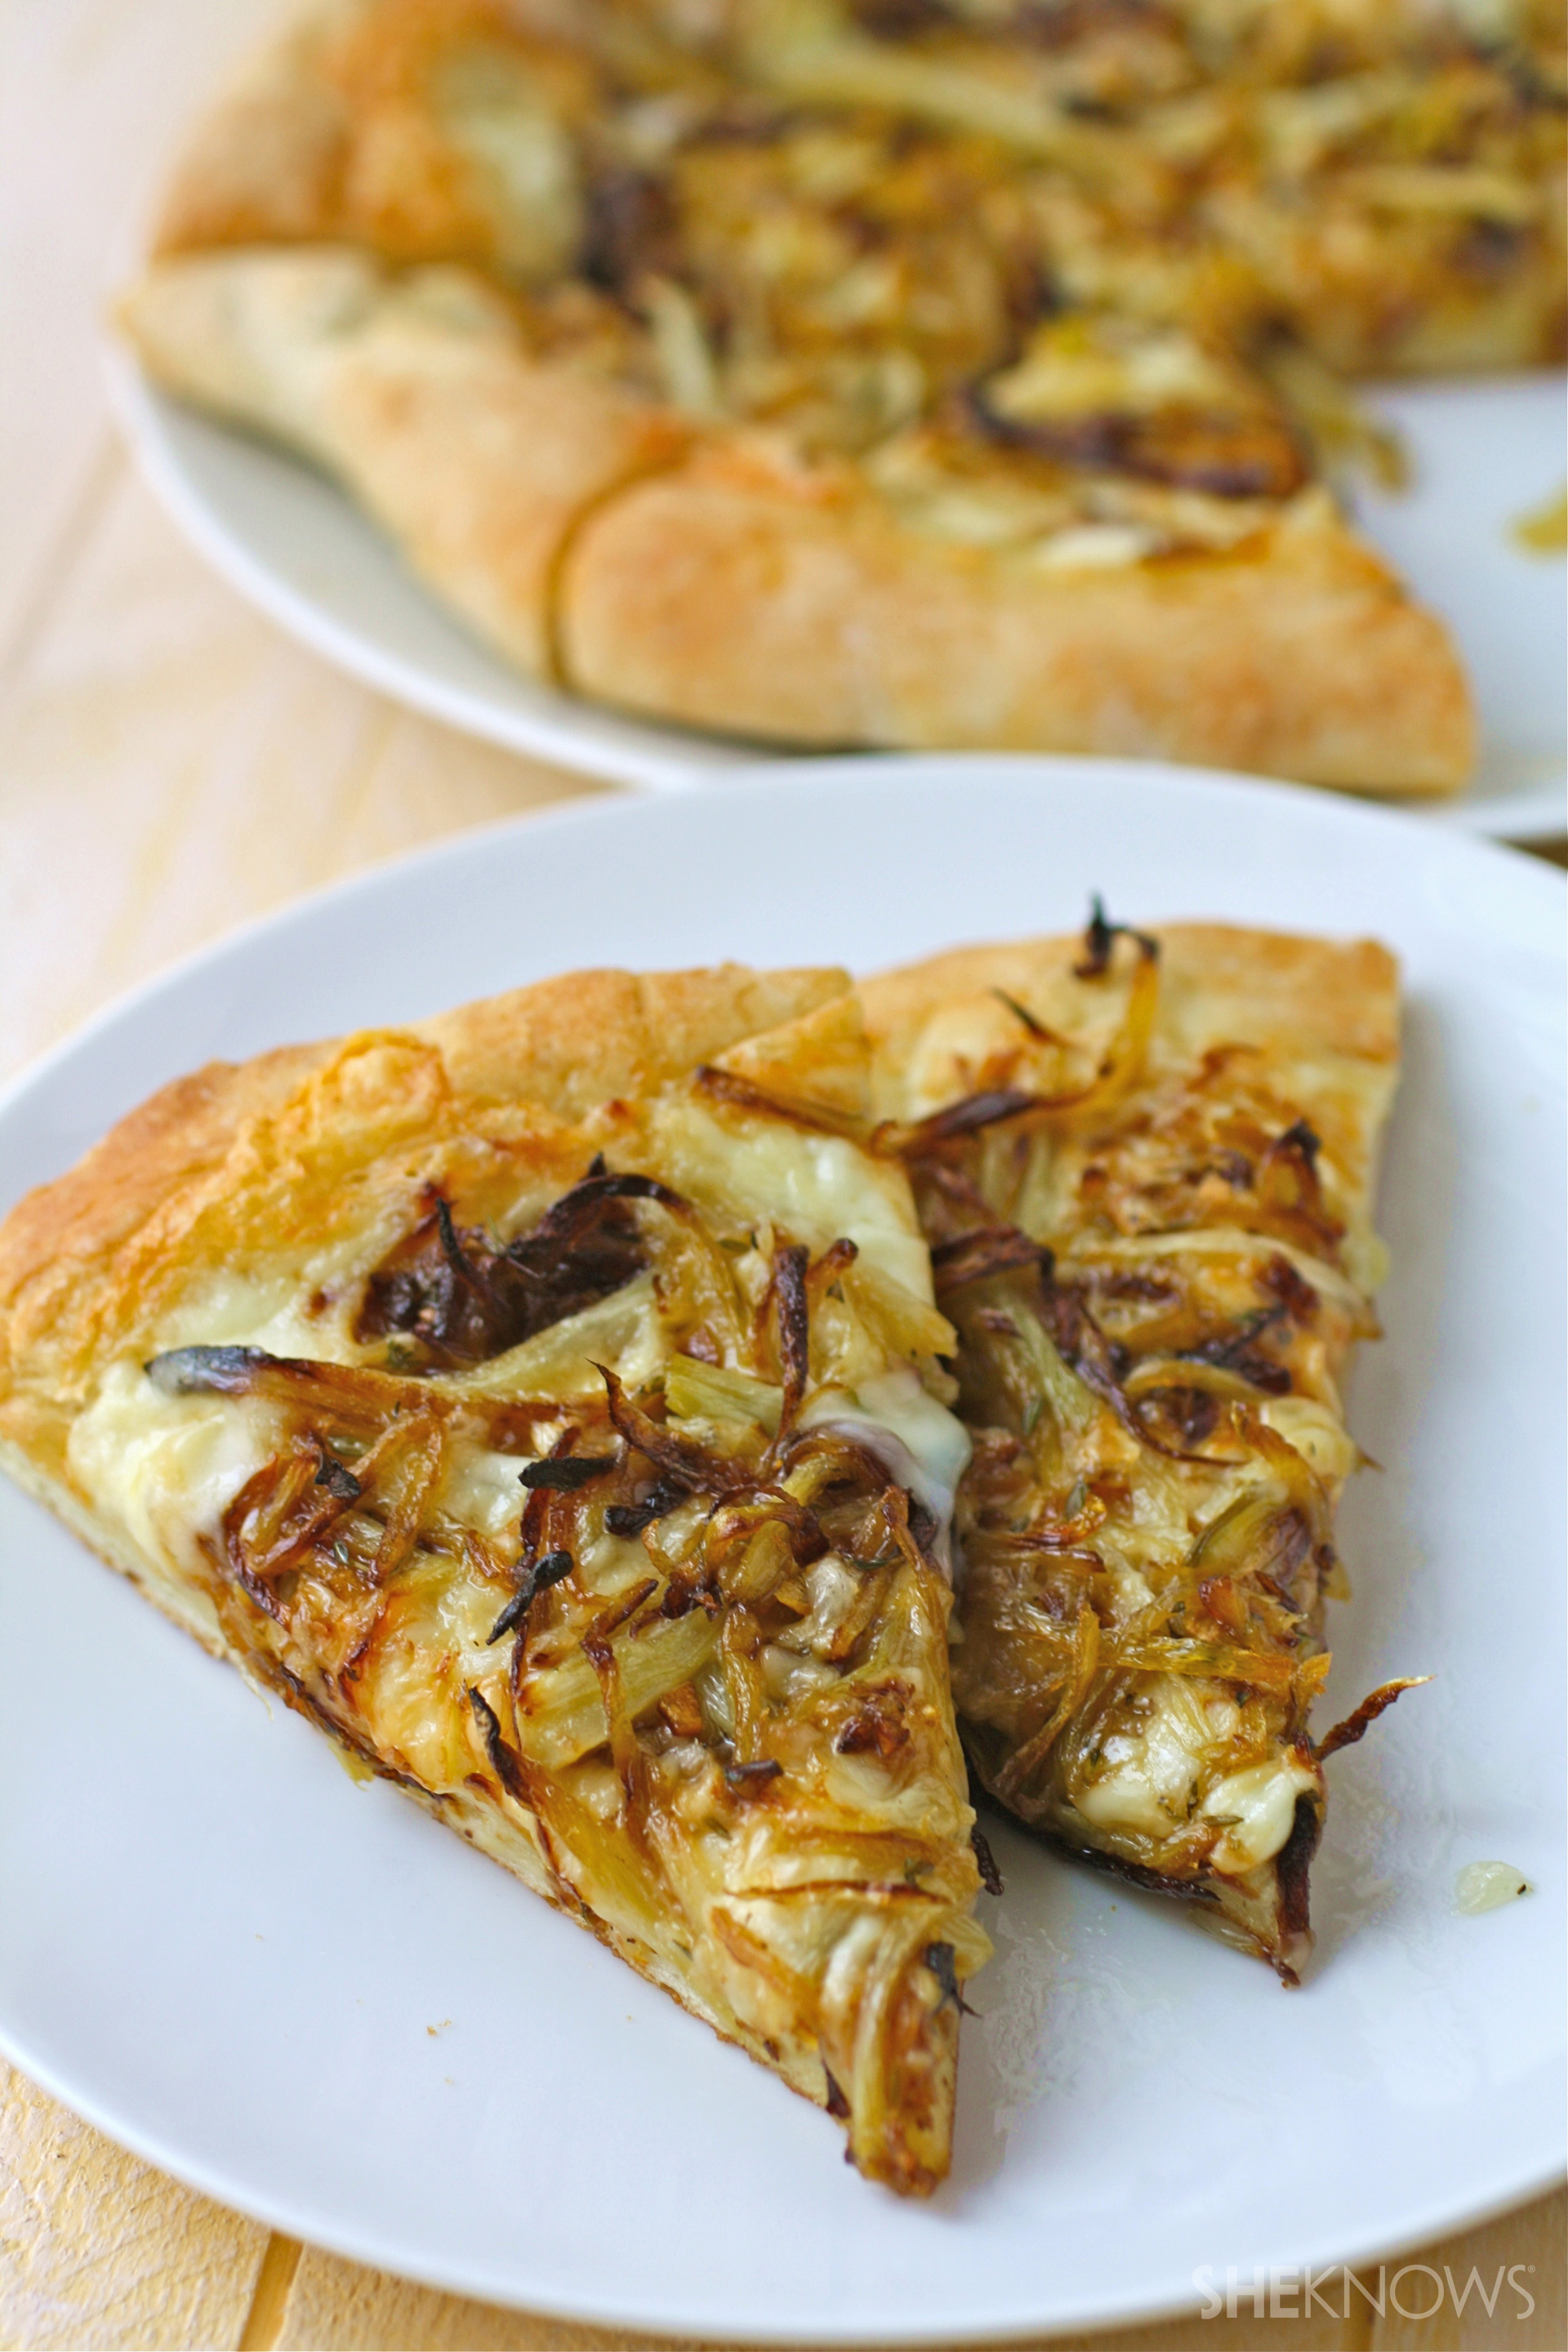 Toss around the idea of adding caramelized fennel to your next pizza